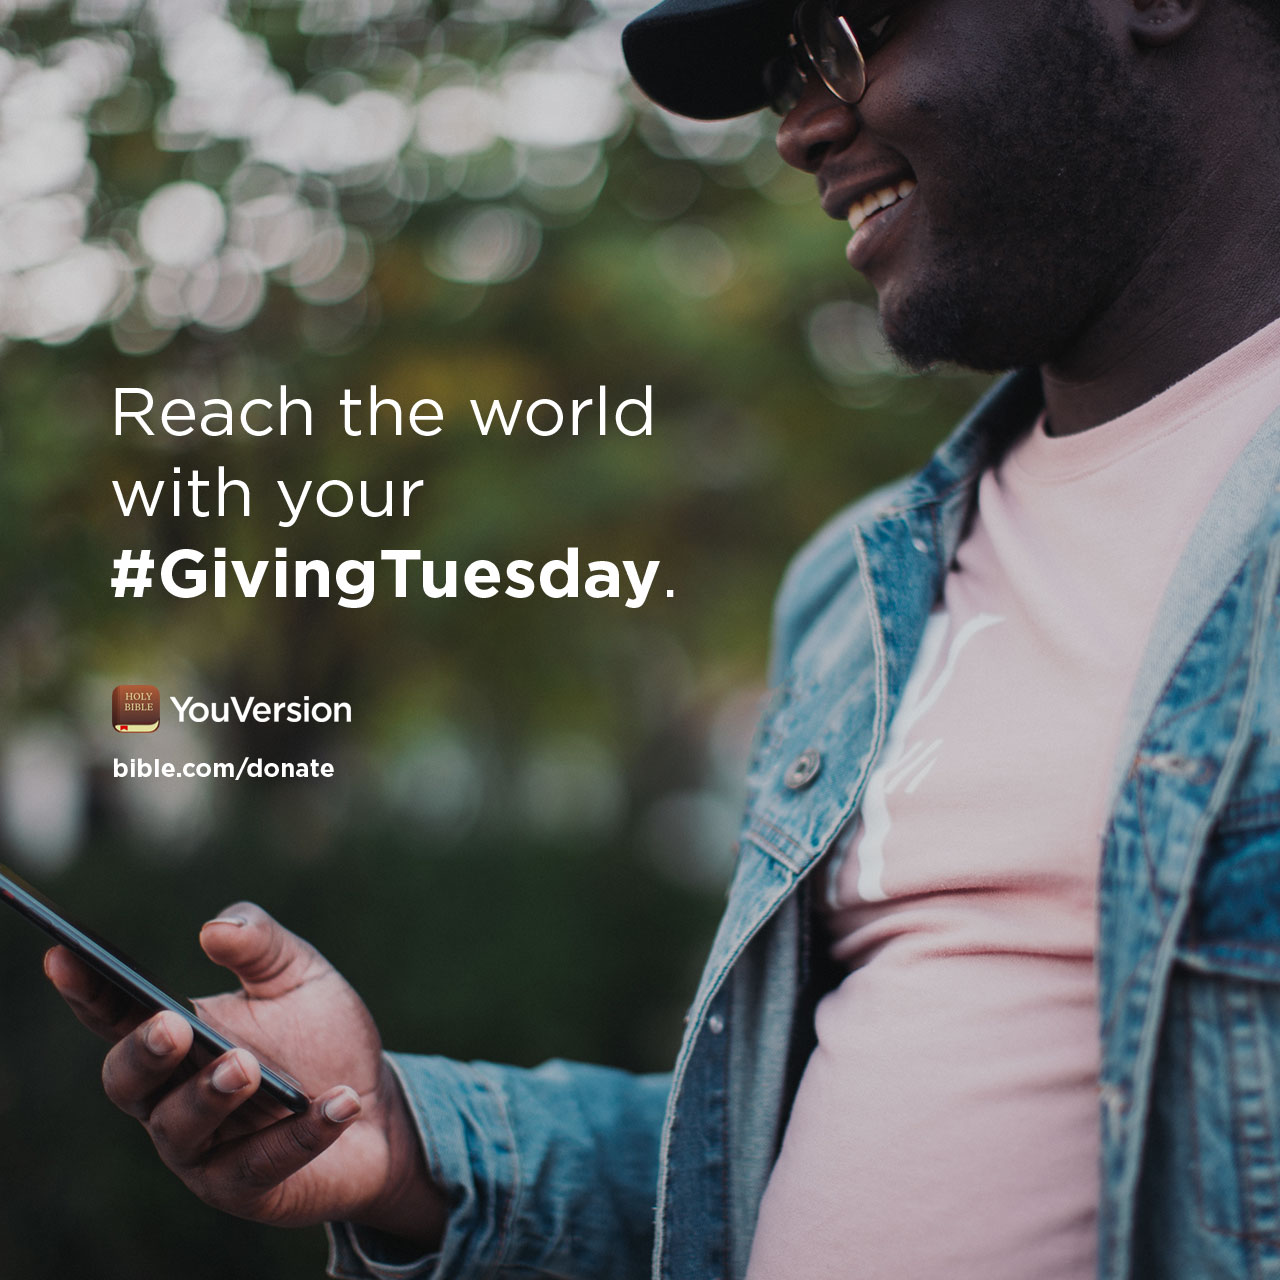 Reach the world with your #GivingTuesday. bible.com/donate